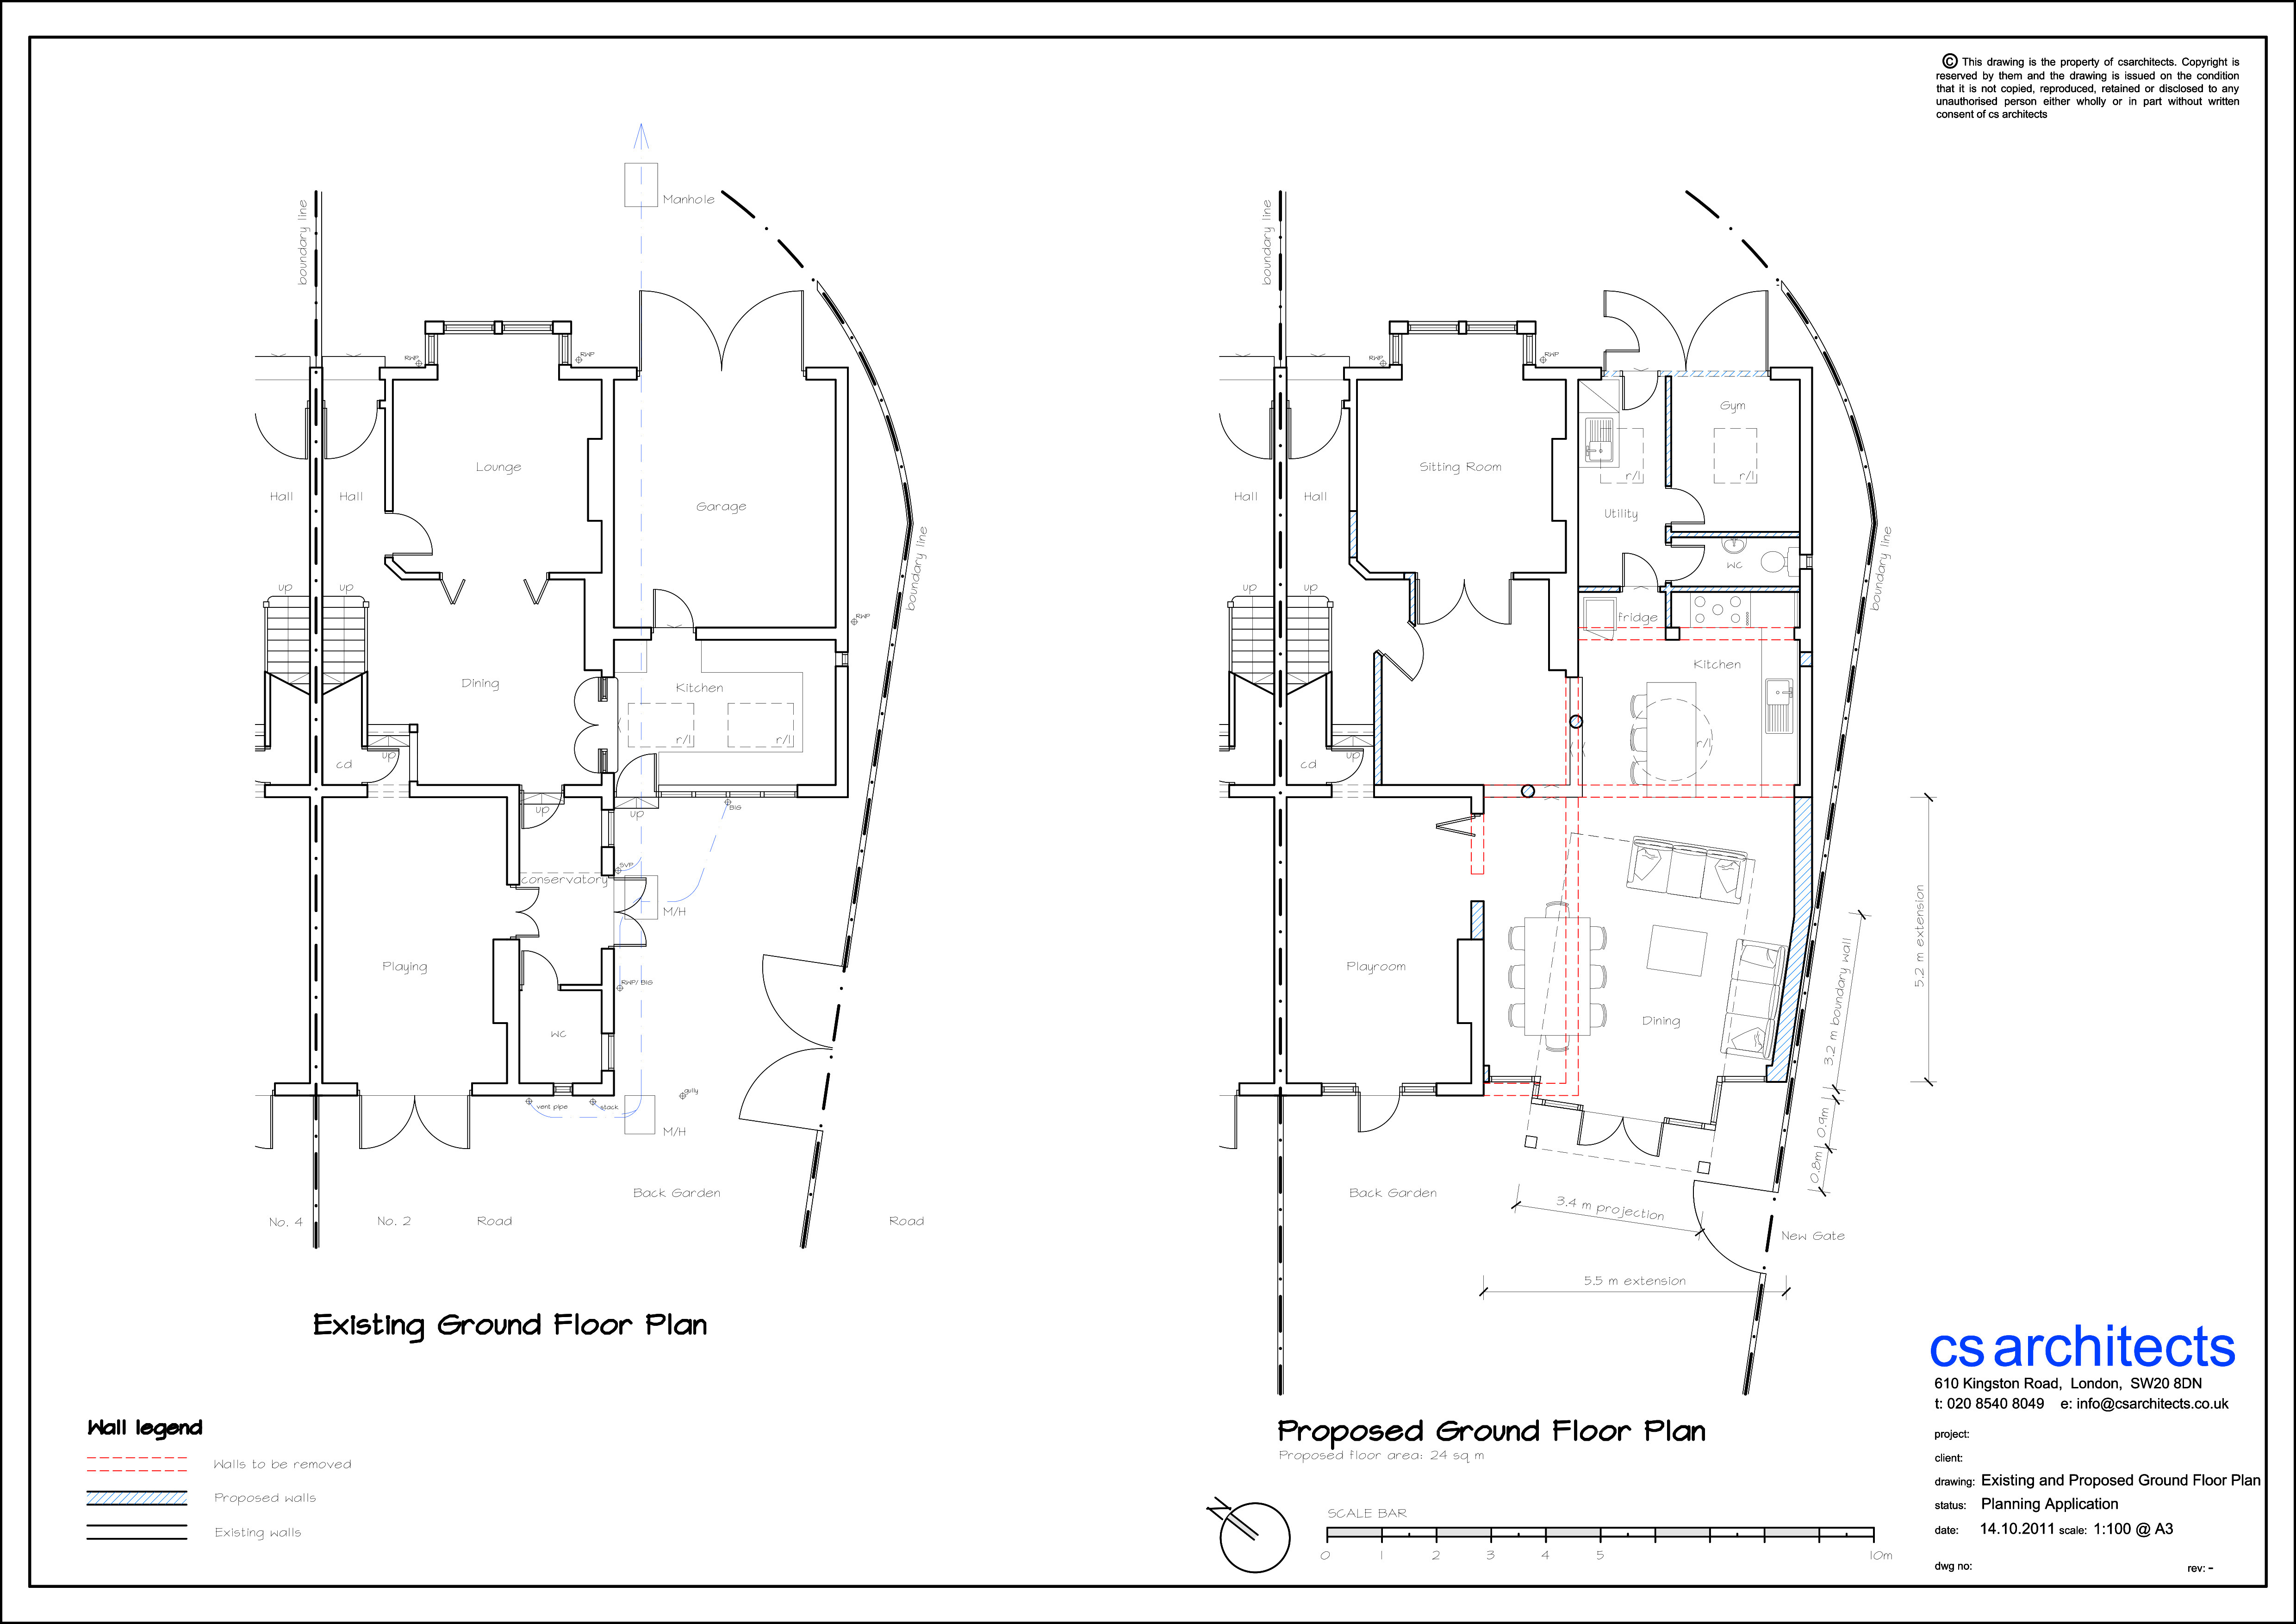 existing and proposed ground floor plan planning application wimbledon united kingdom - Floor Plan Application